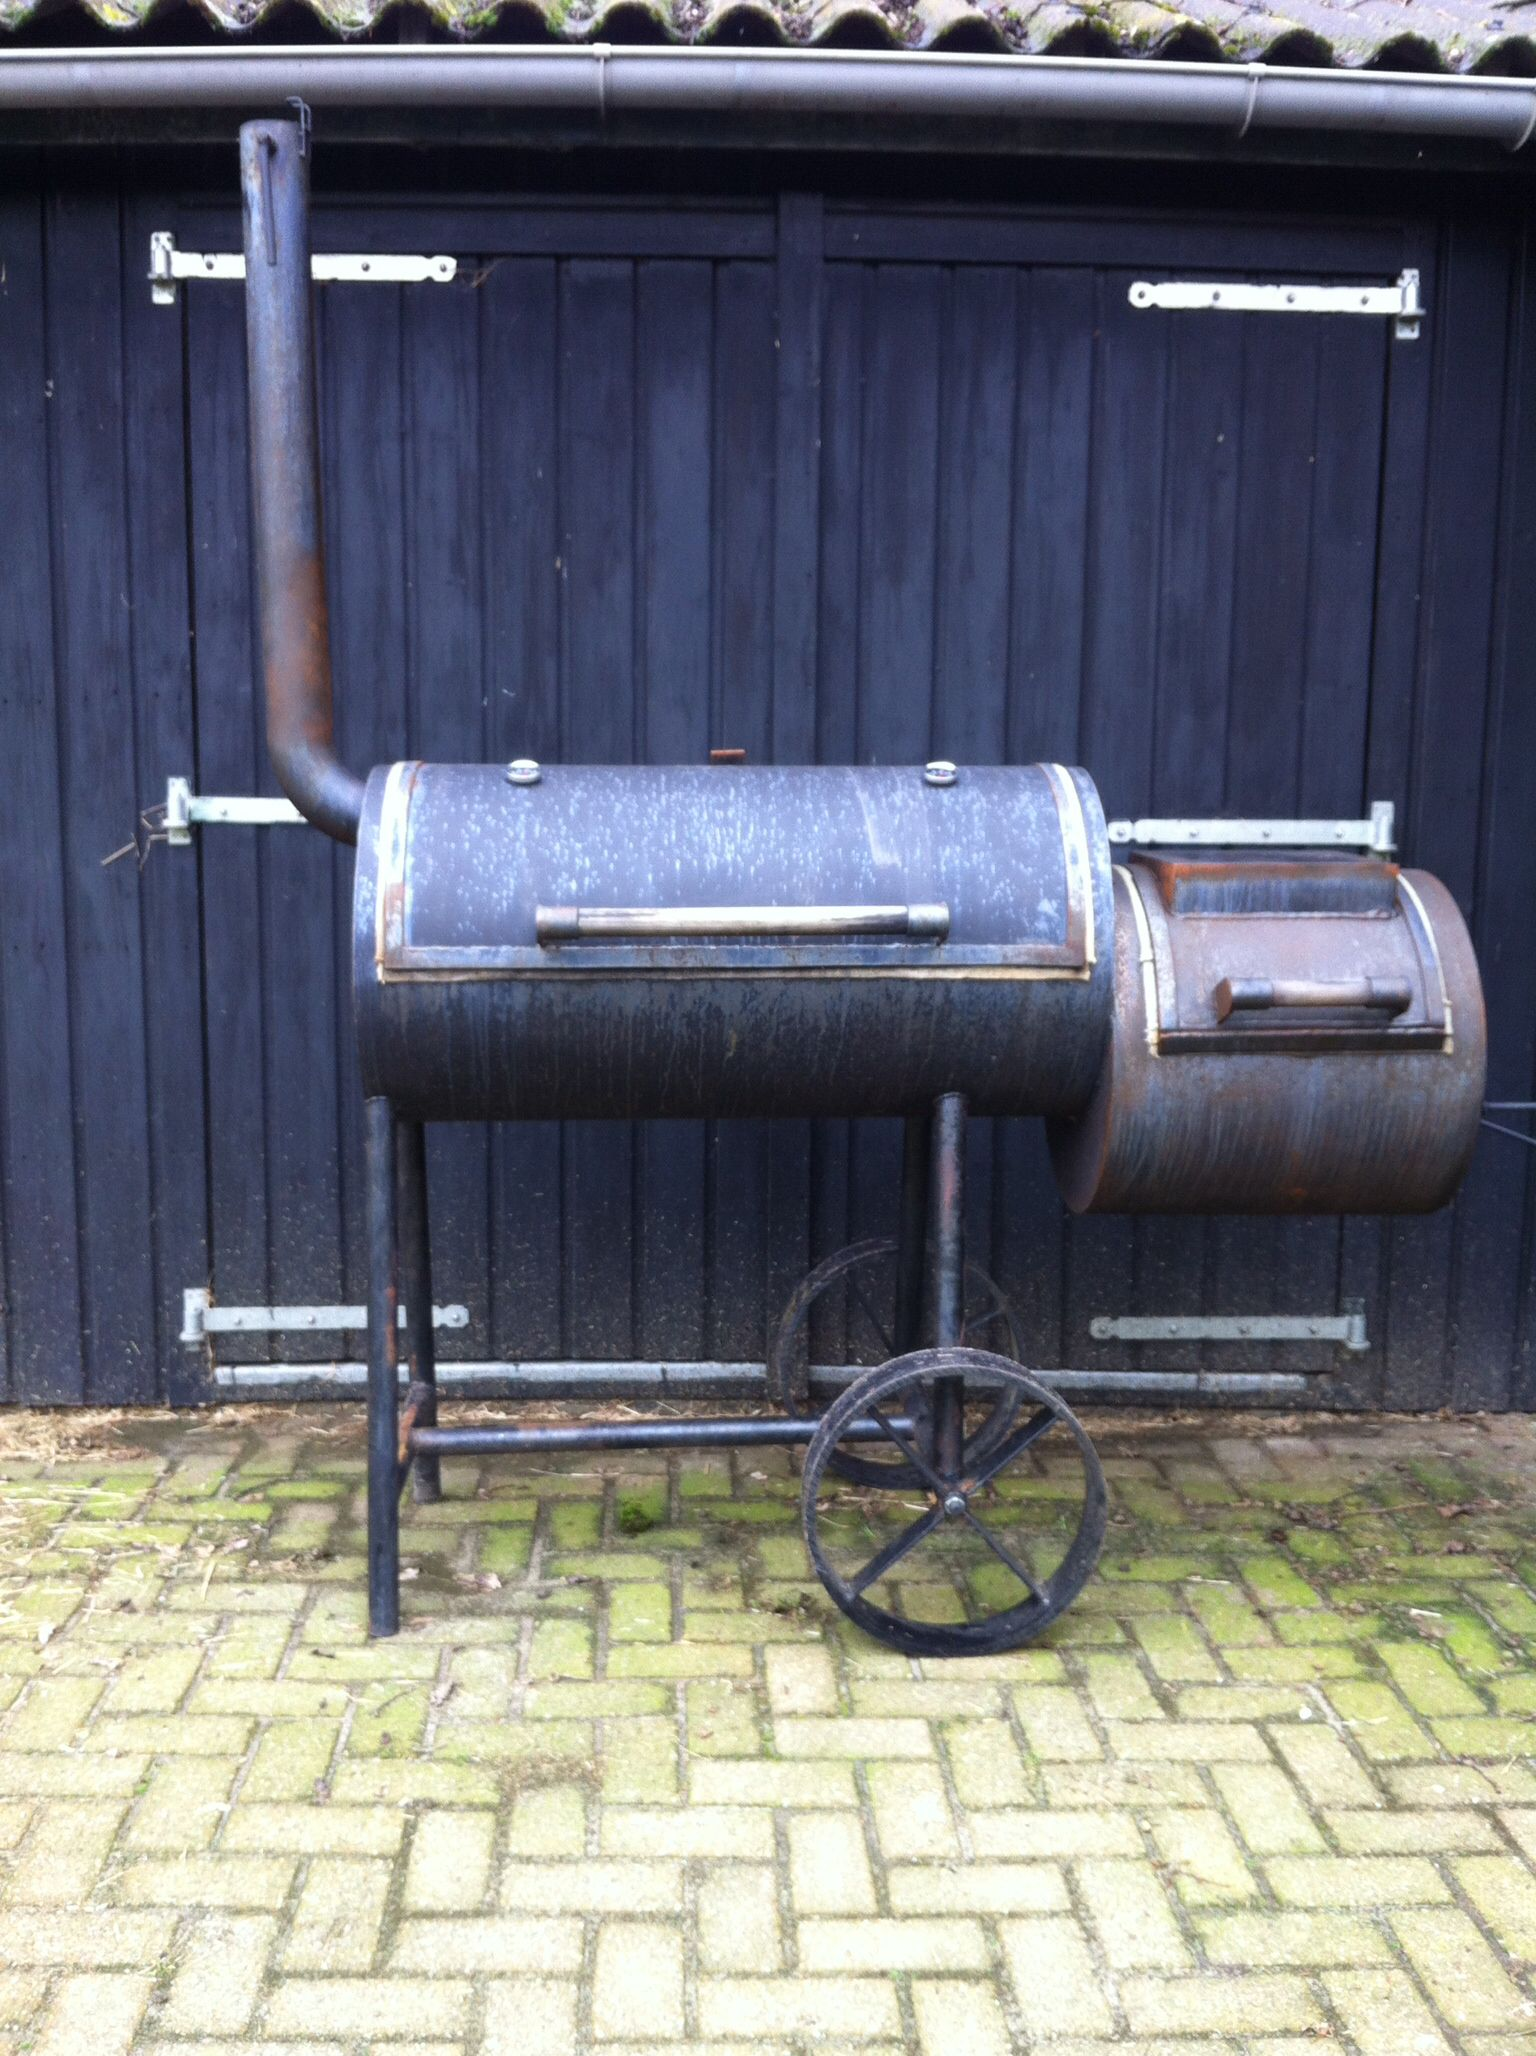 A Home Build Offset Smoker Bought 2nd Hand Just Needs Some Paint And It S Ready To Fire Up